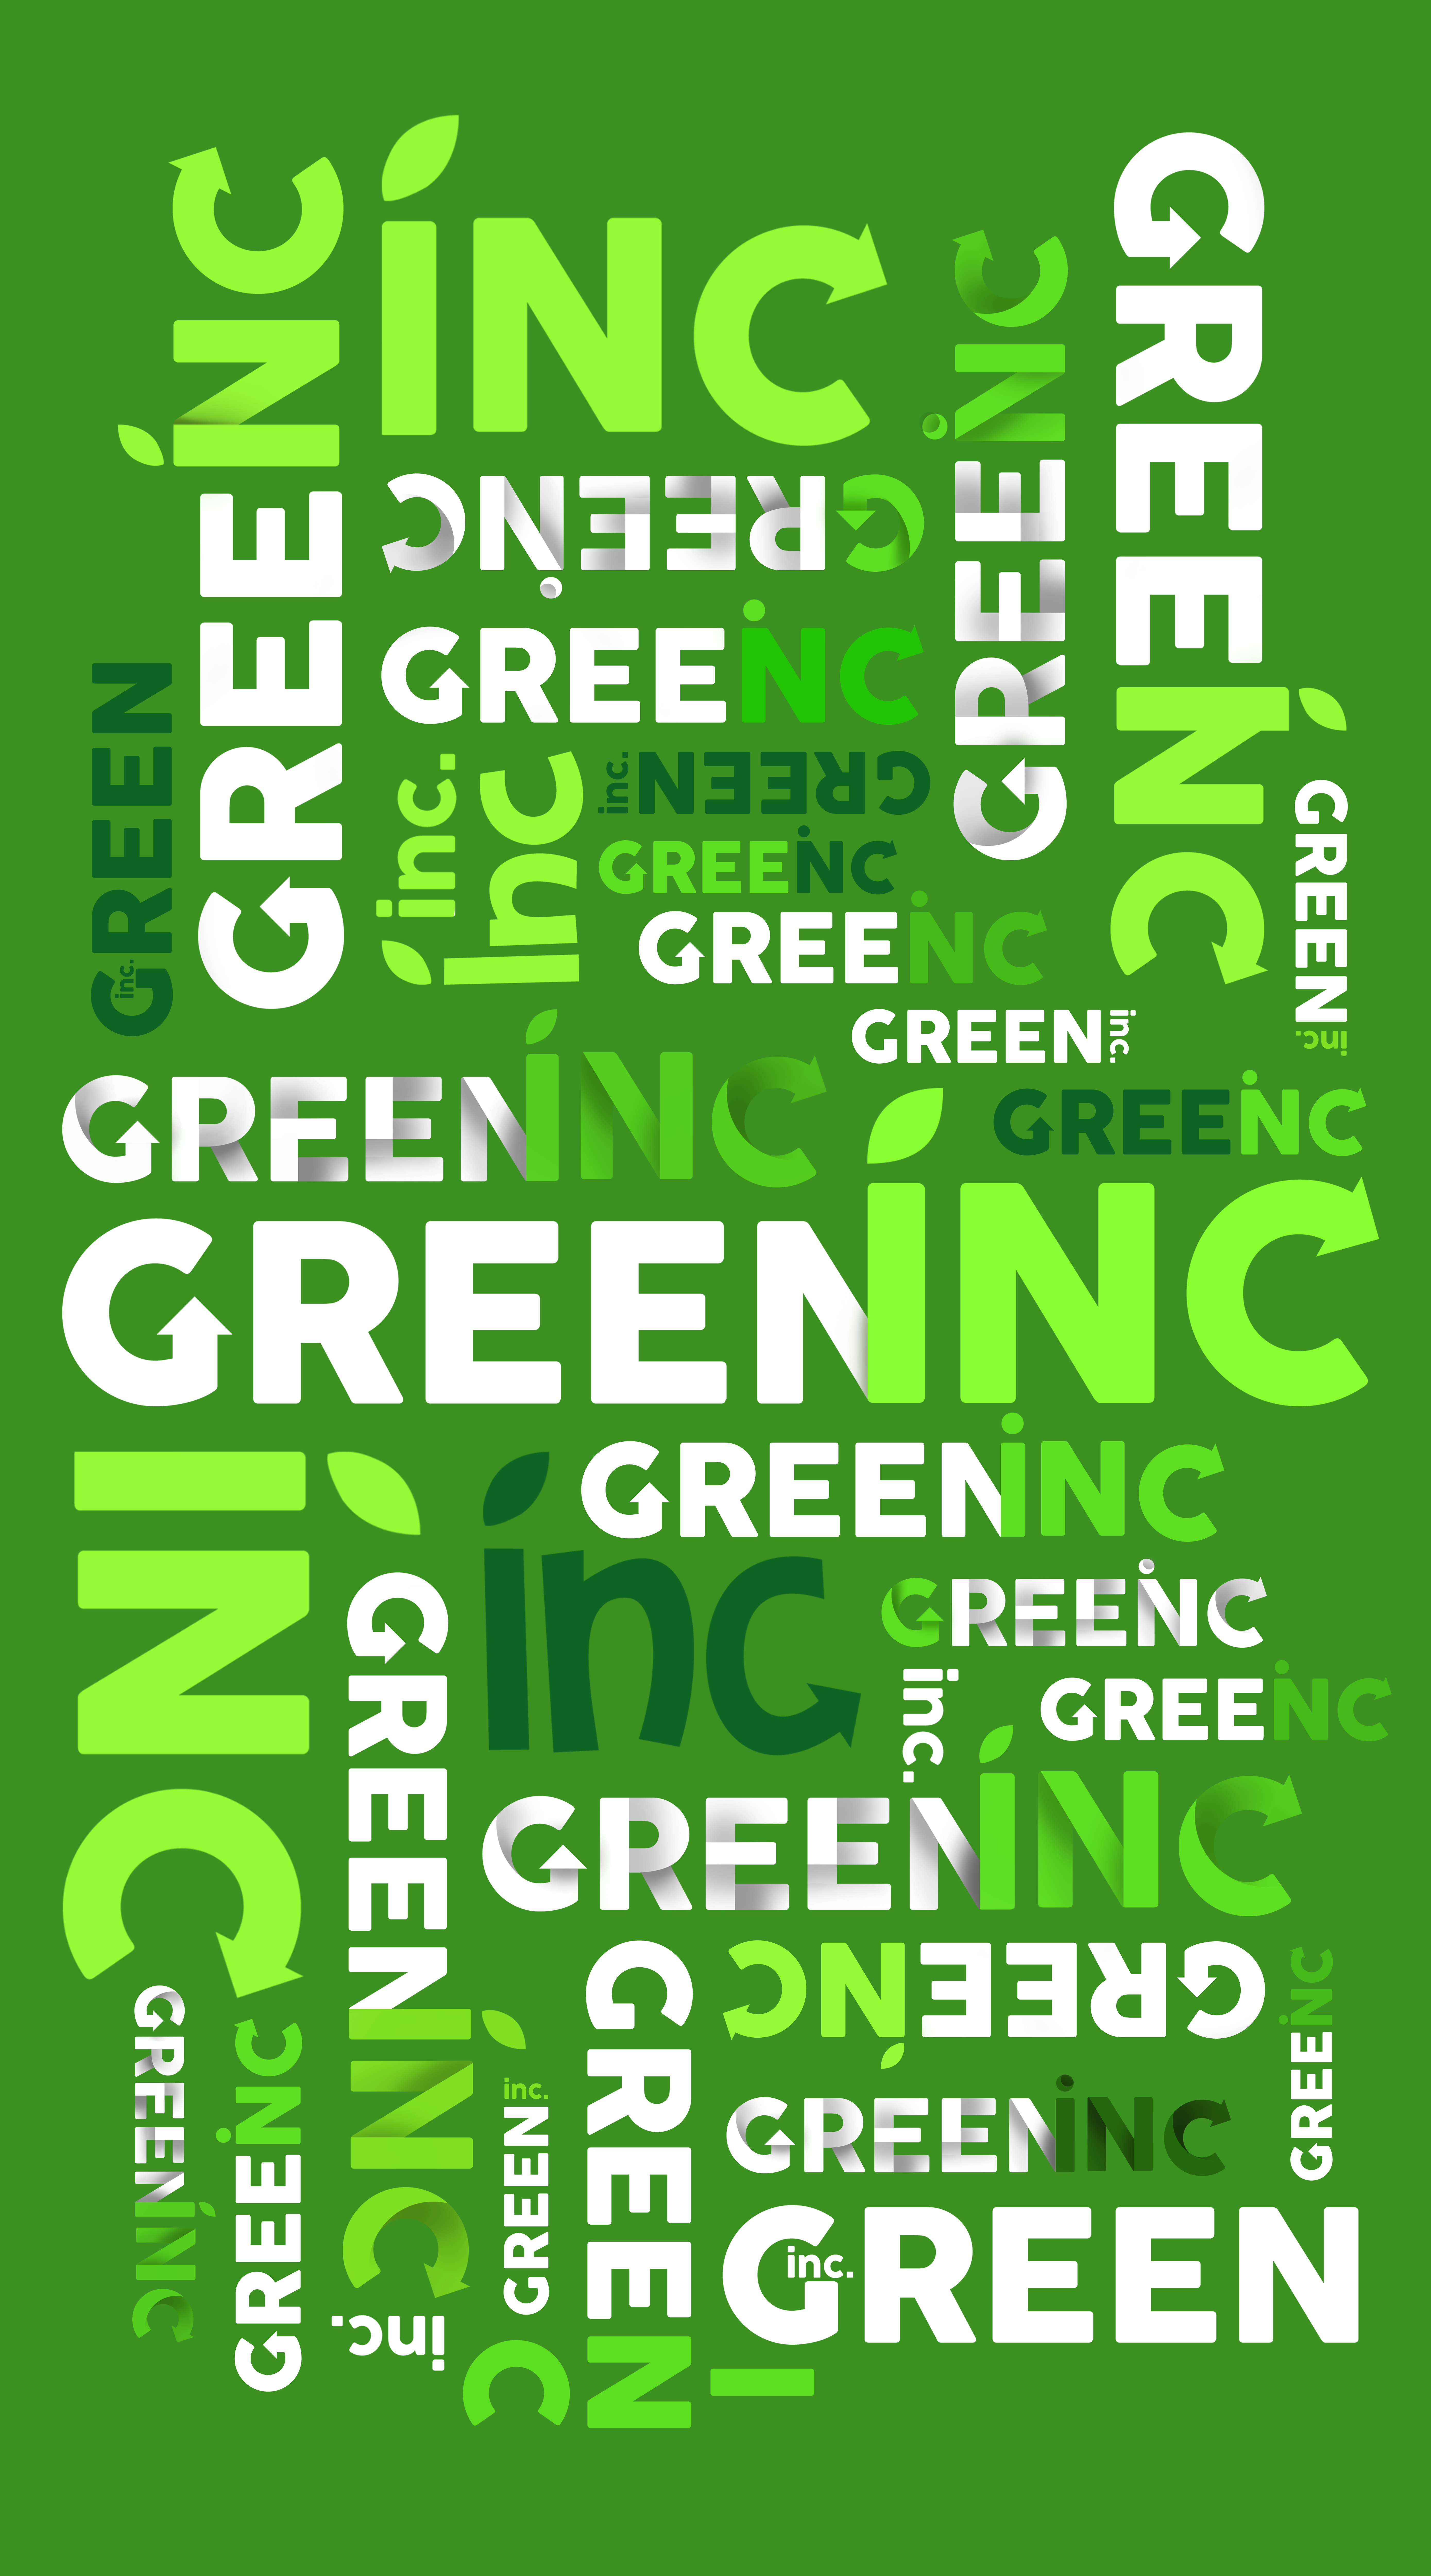 Green Inc Vinyl Banner 2 - Copy (2).jpg